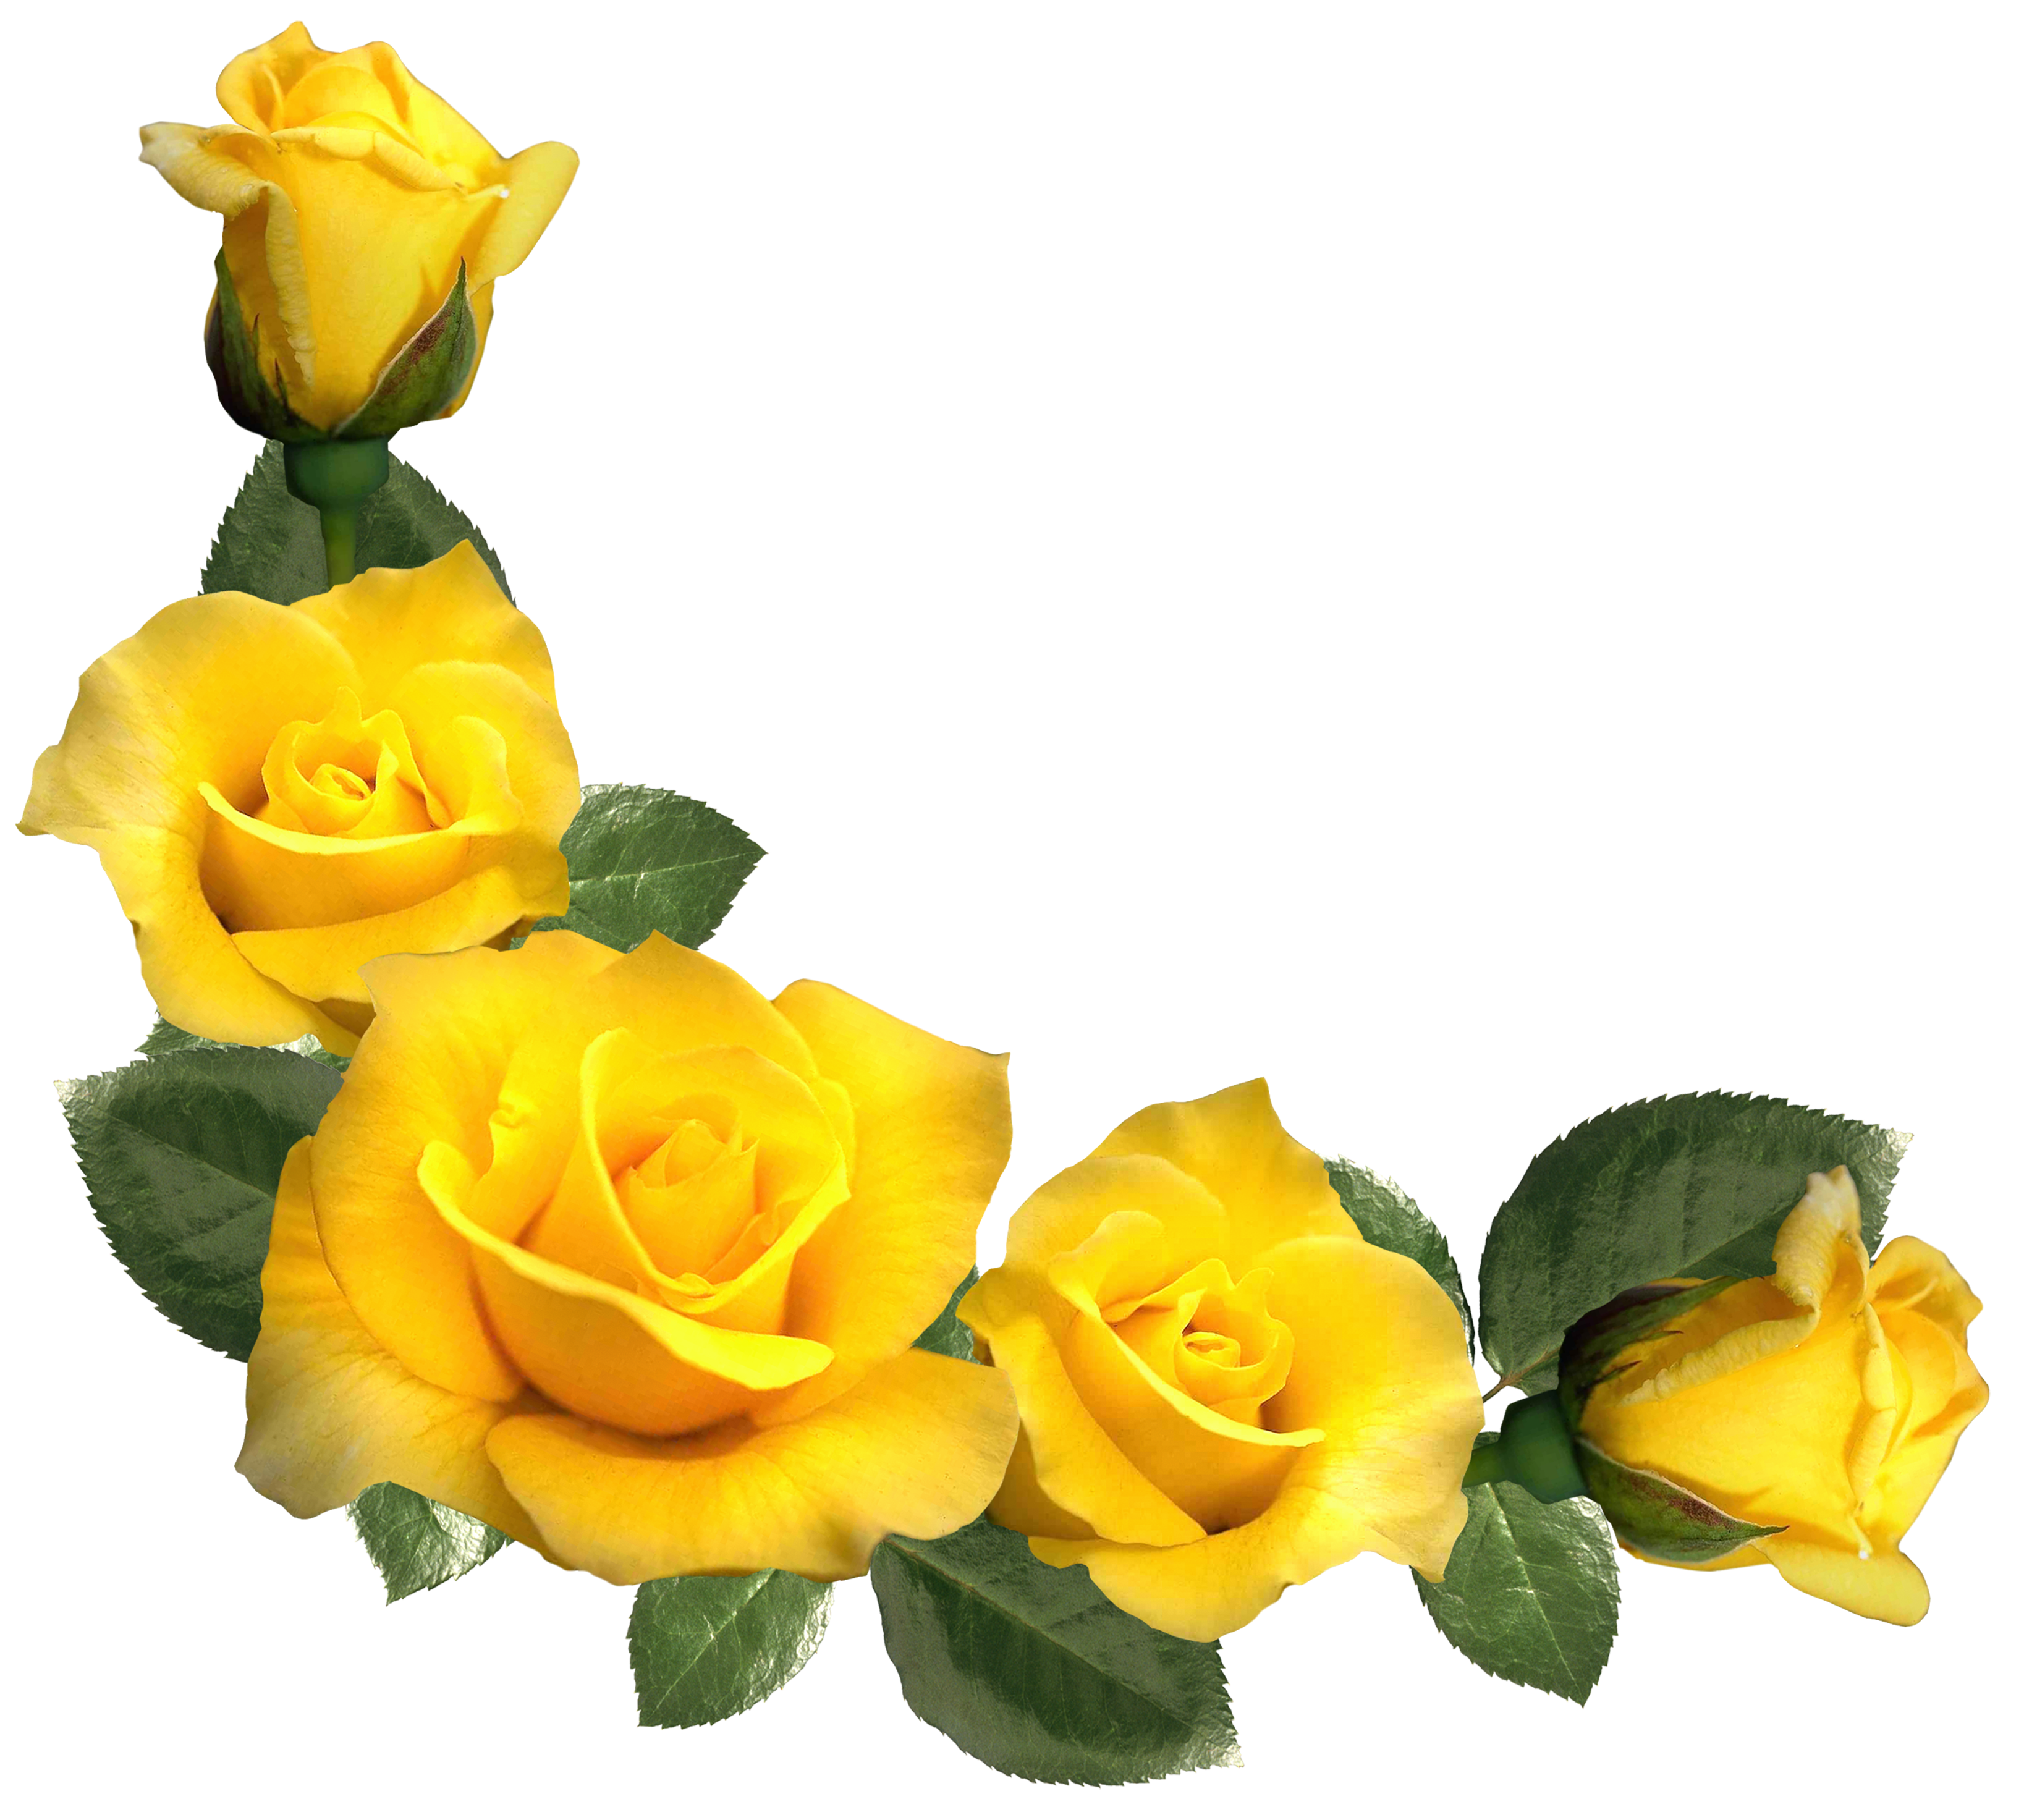 Beautiful decor clipart image. Yellow roses png clip art black and white stock